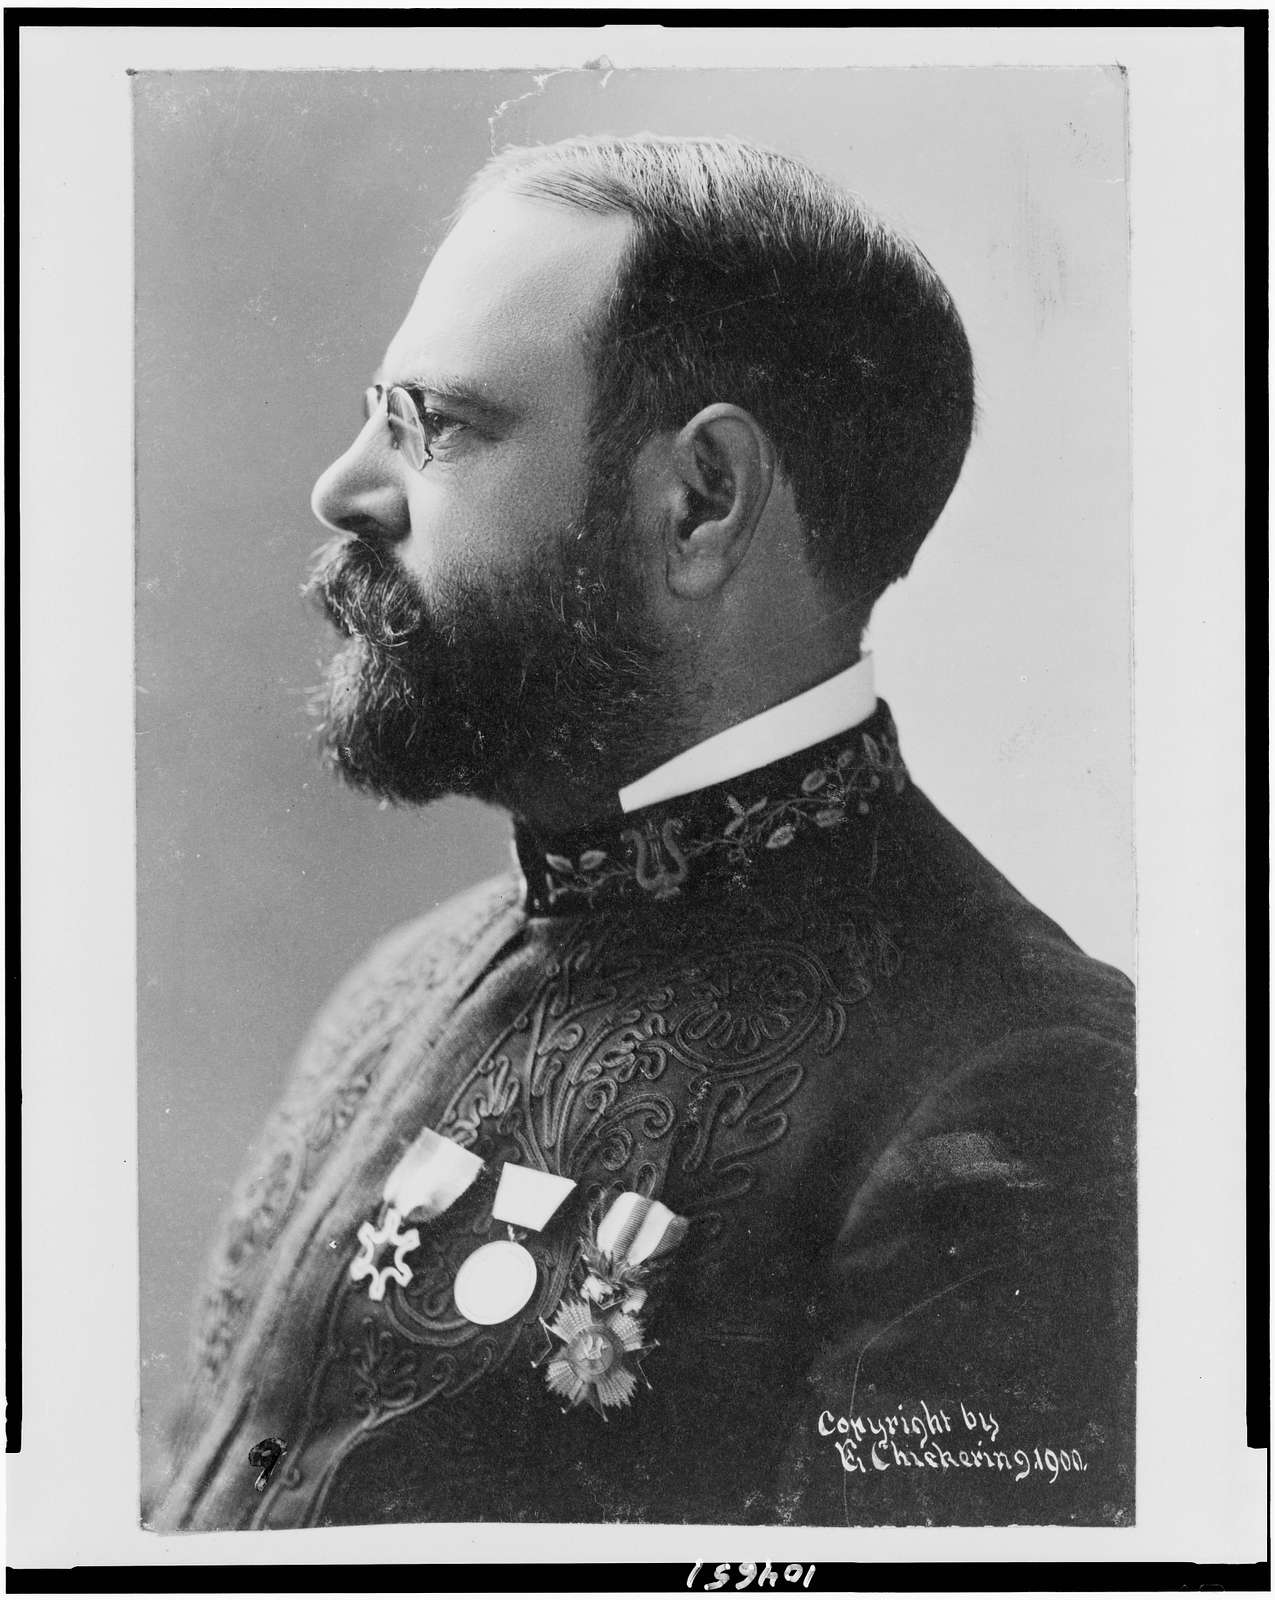 [John Philip Sousa, head-and-shoulders portrait, facing left, wearing band uniform with medals]